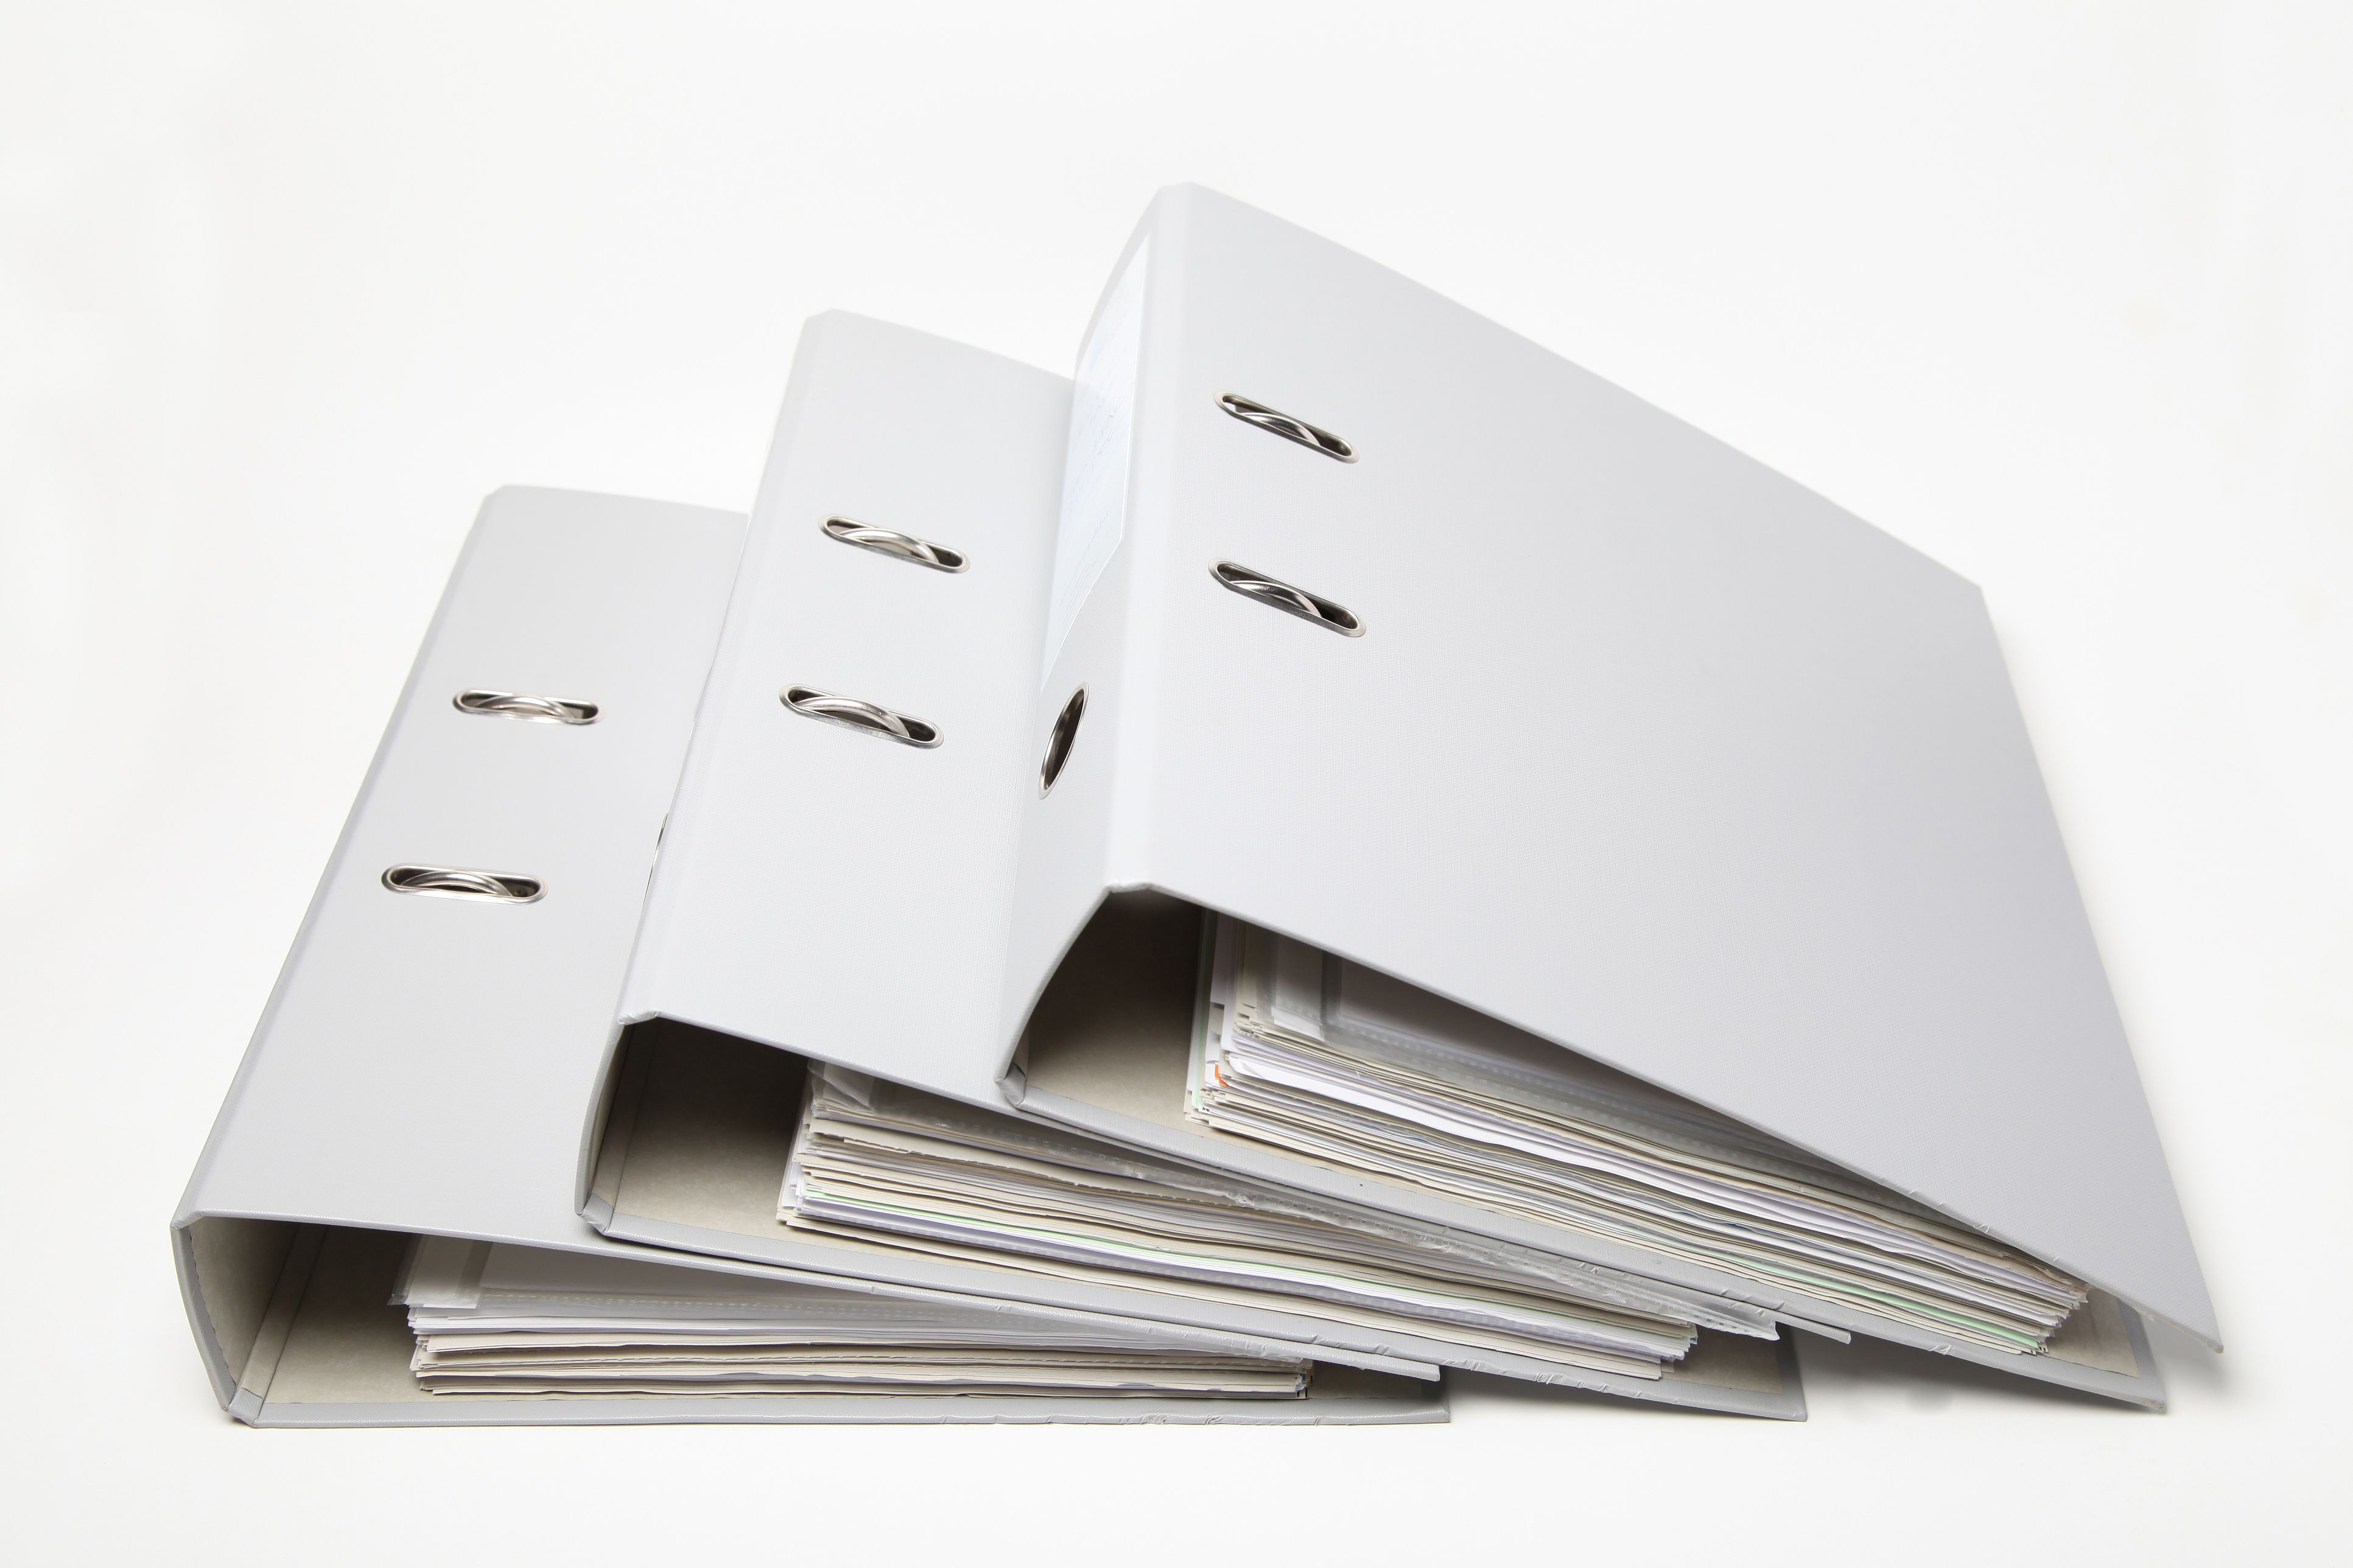 Three-ring binders produced in Owings Mills, Maryland.